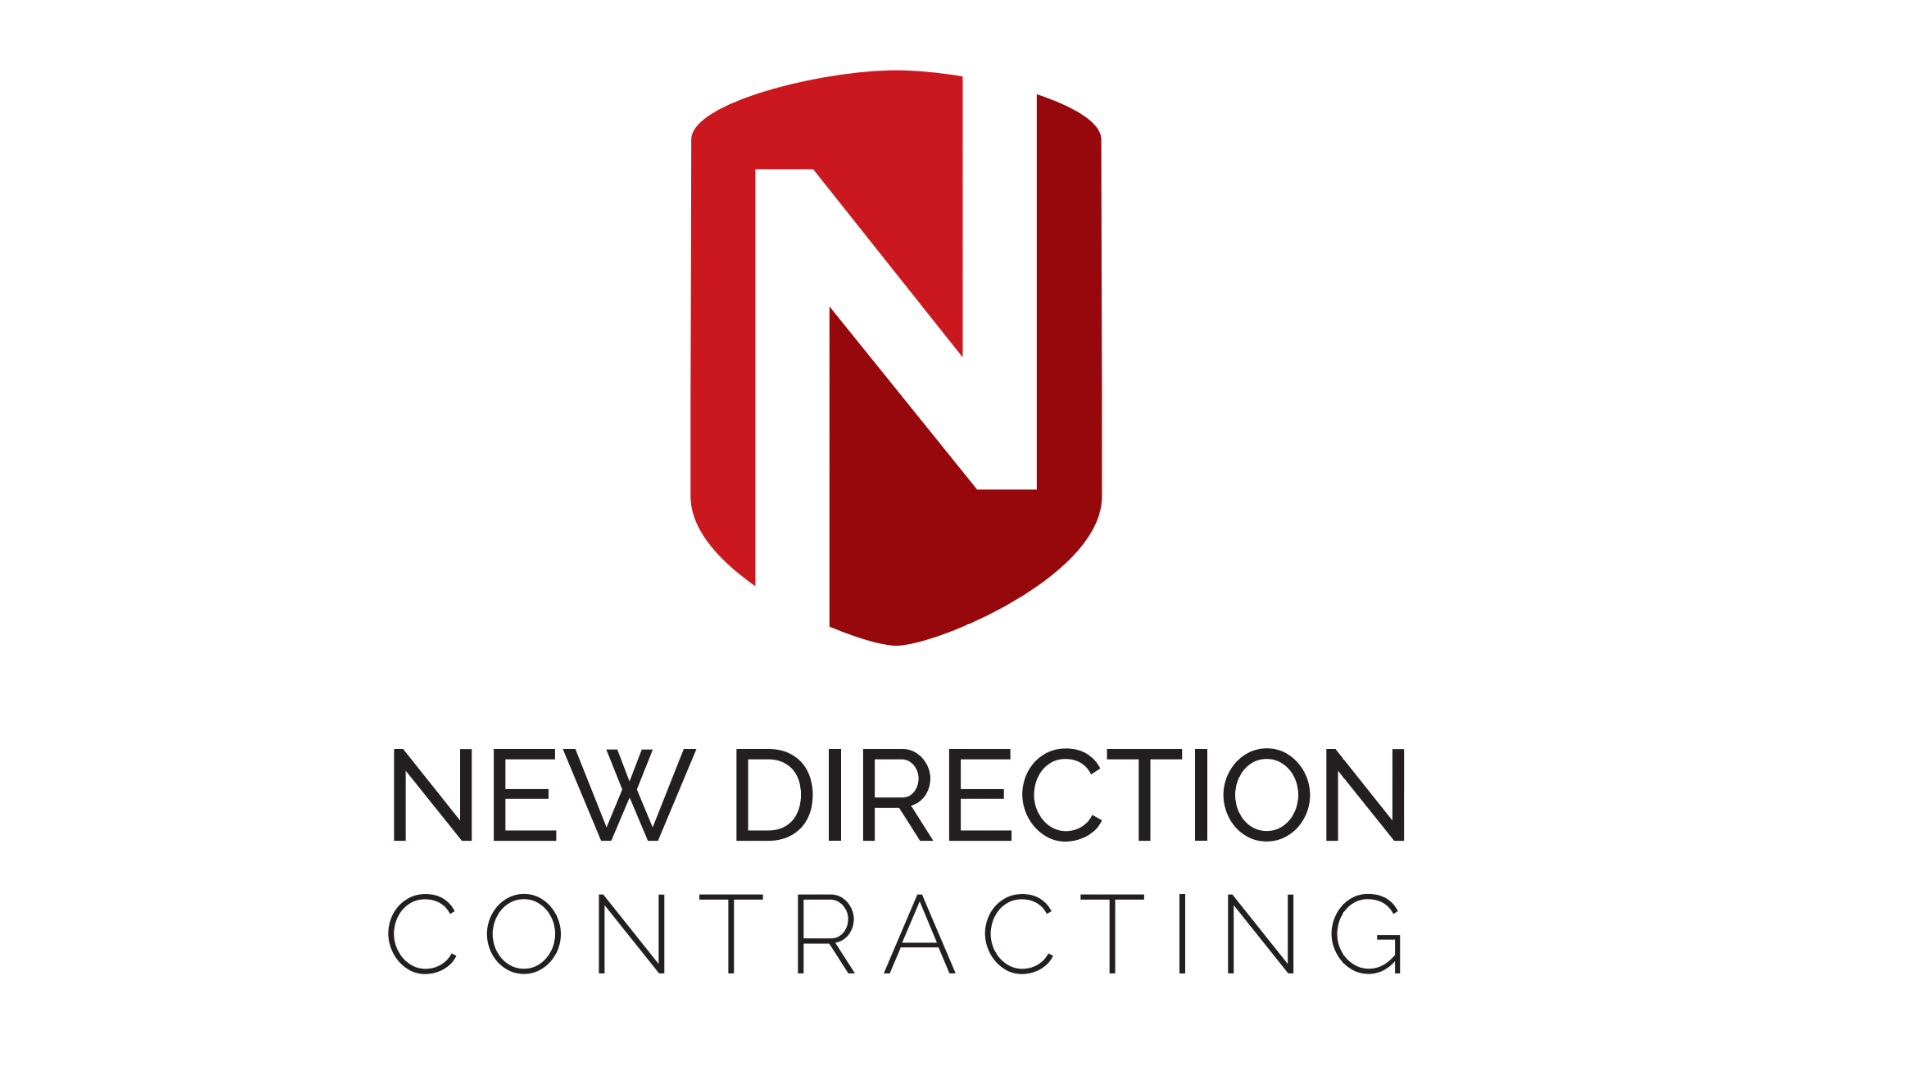 New Direction Contracting Inc. logo